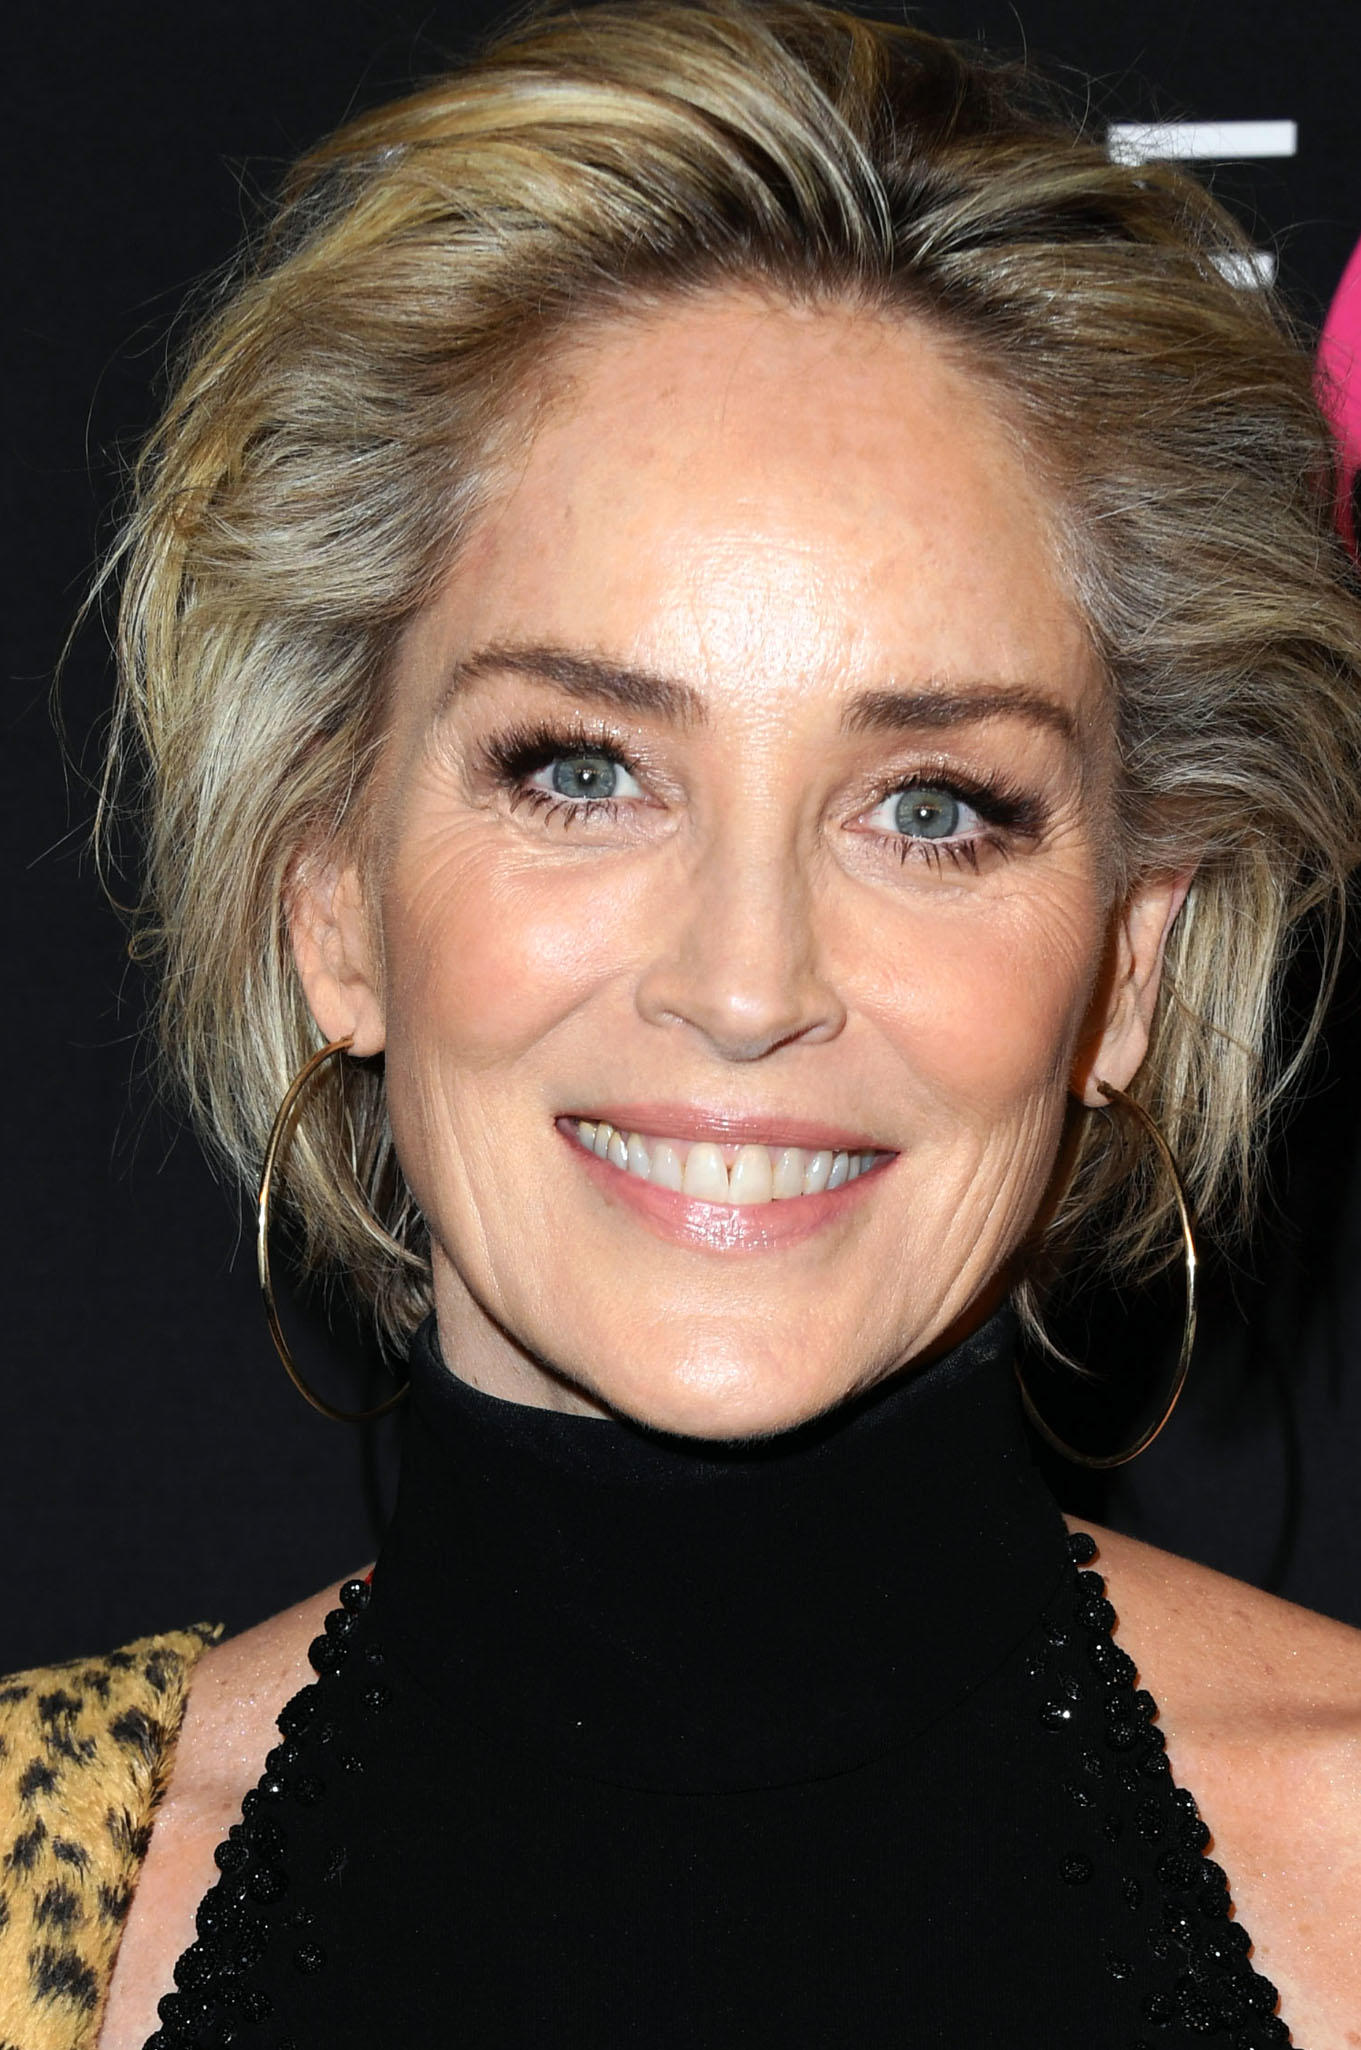 Sharon Stone at The Women's Cancer Research Fund's An Unforgettable Evening gala in Beverly HIlls, California.